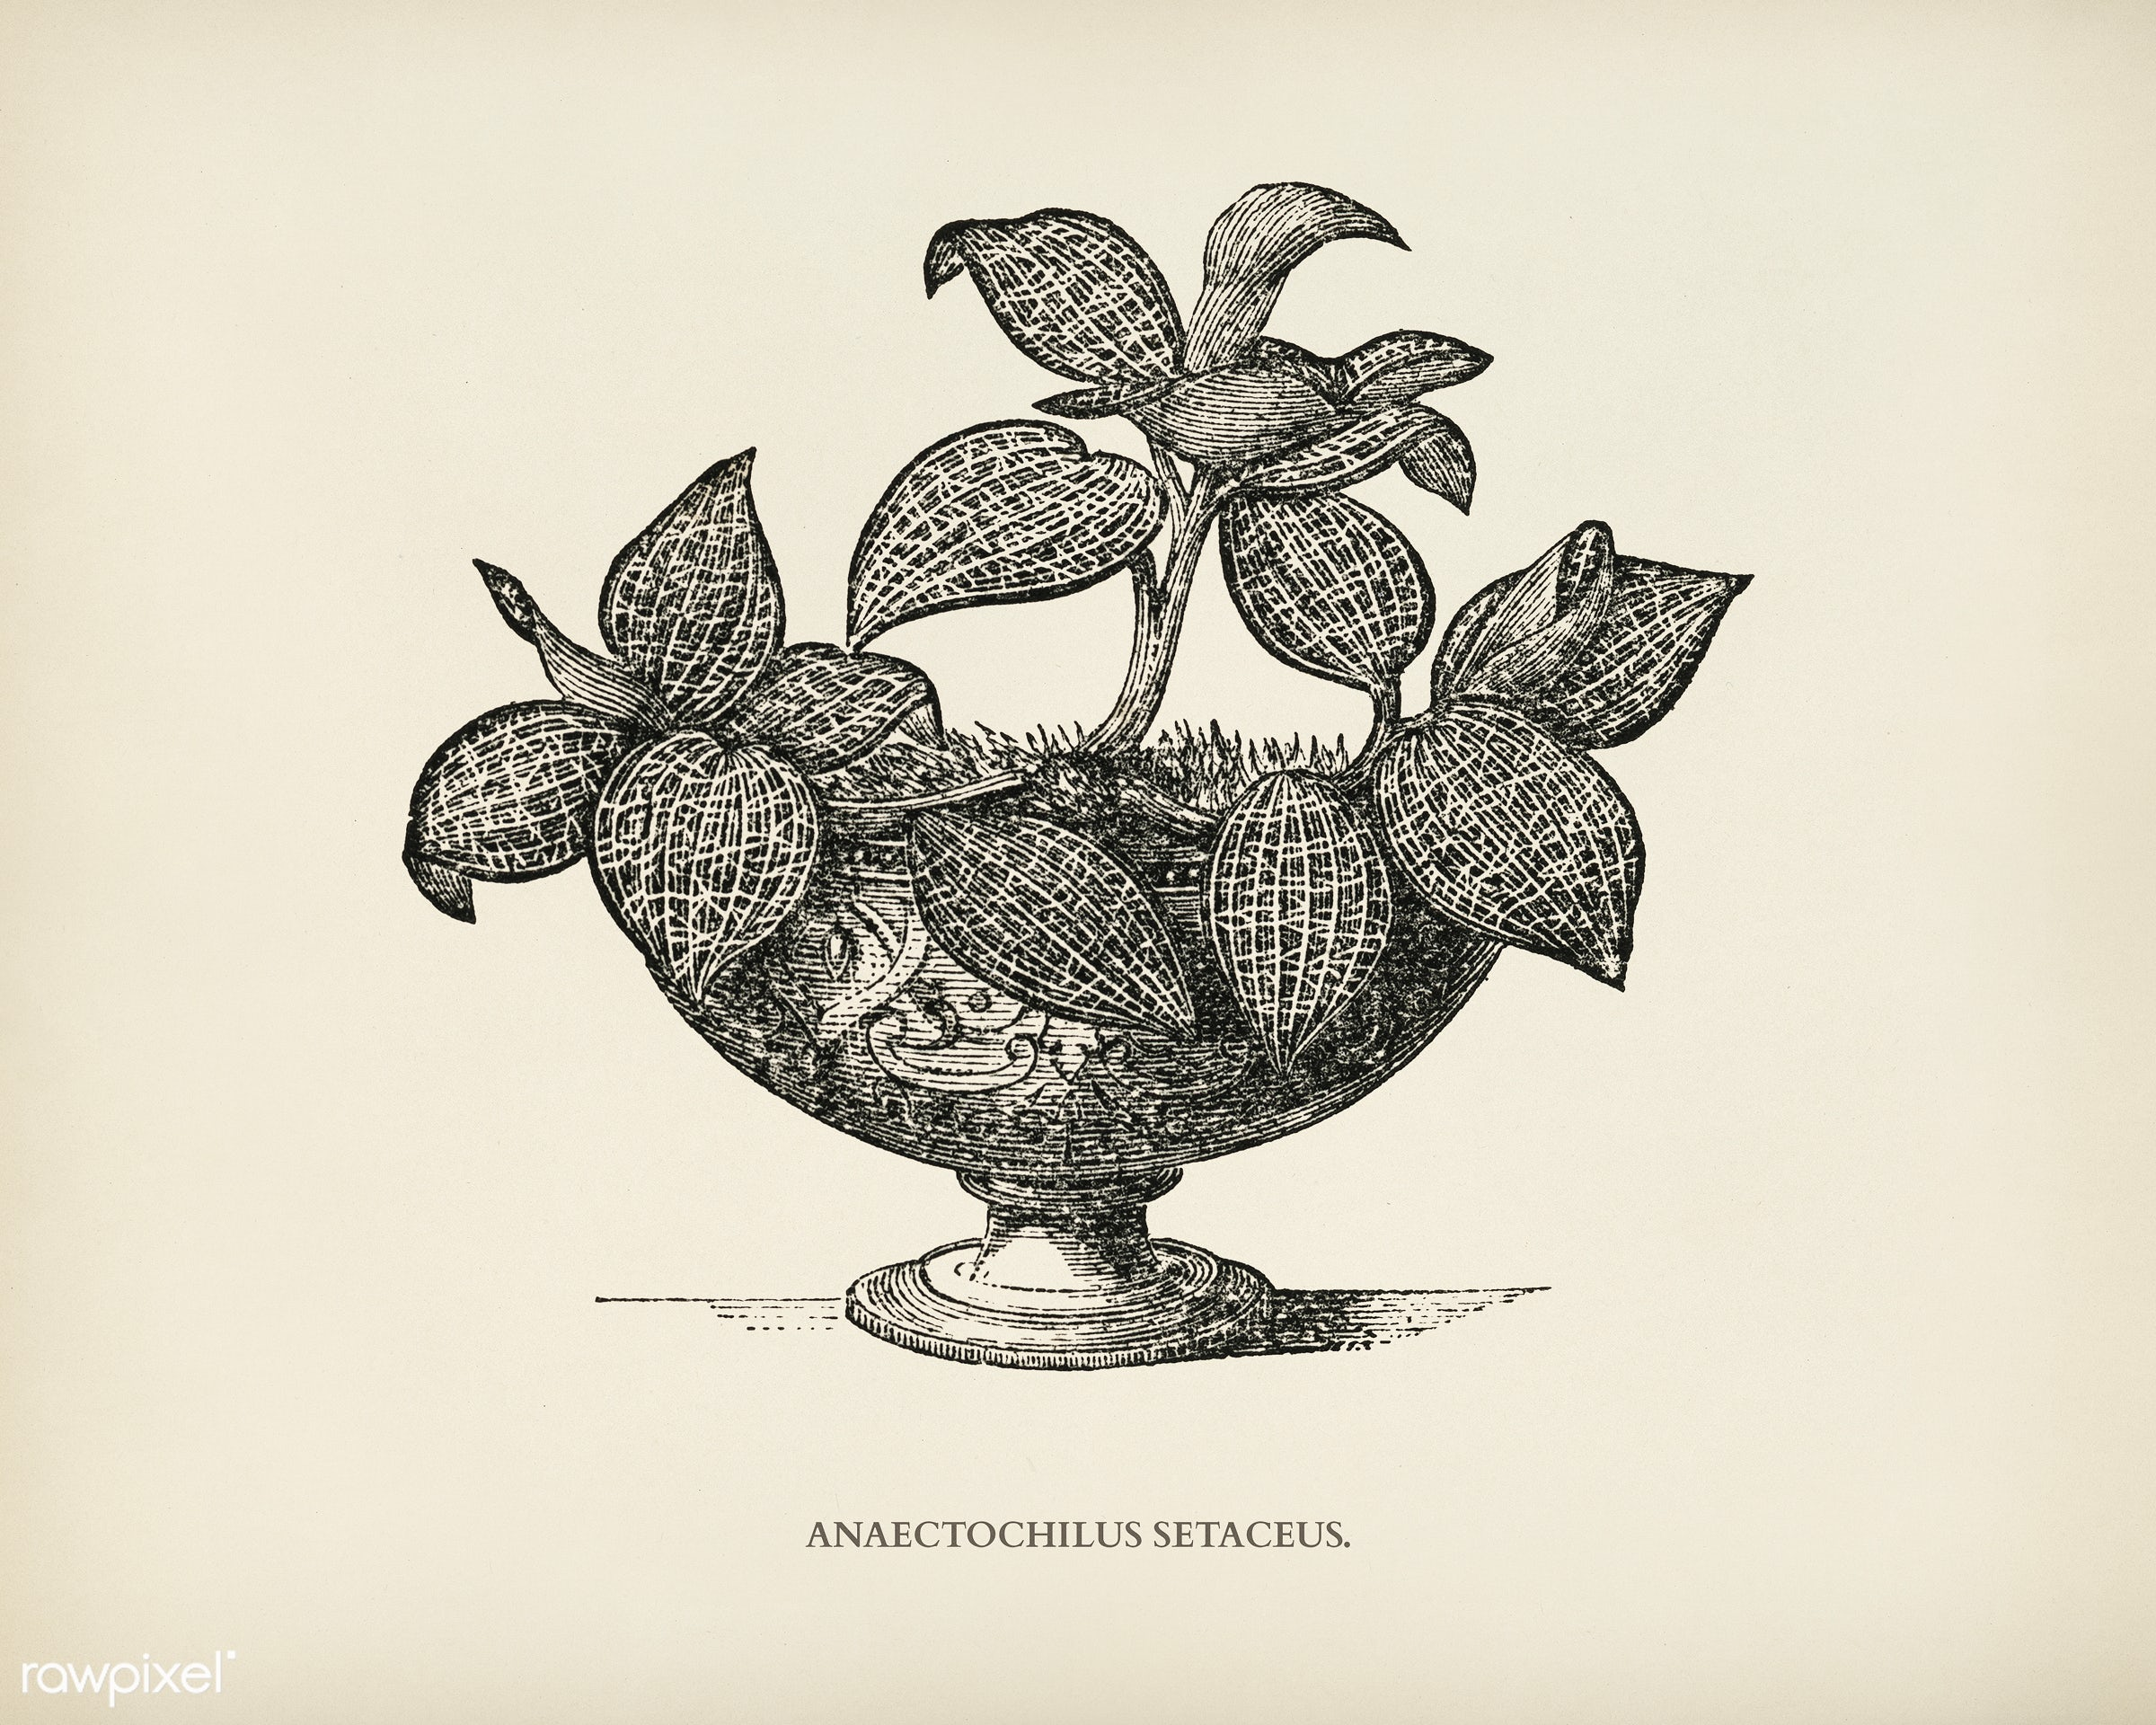 Anaectochilus Setaceus engraved by Benjamin Fawcett (1808-1893) for Shirley Hibberd's (1825-1890) New and Rare...